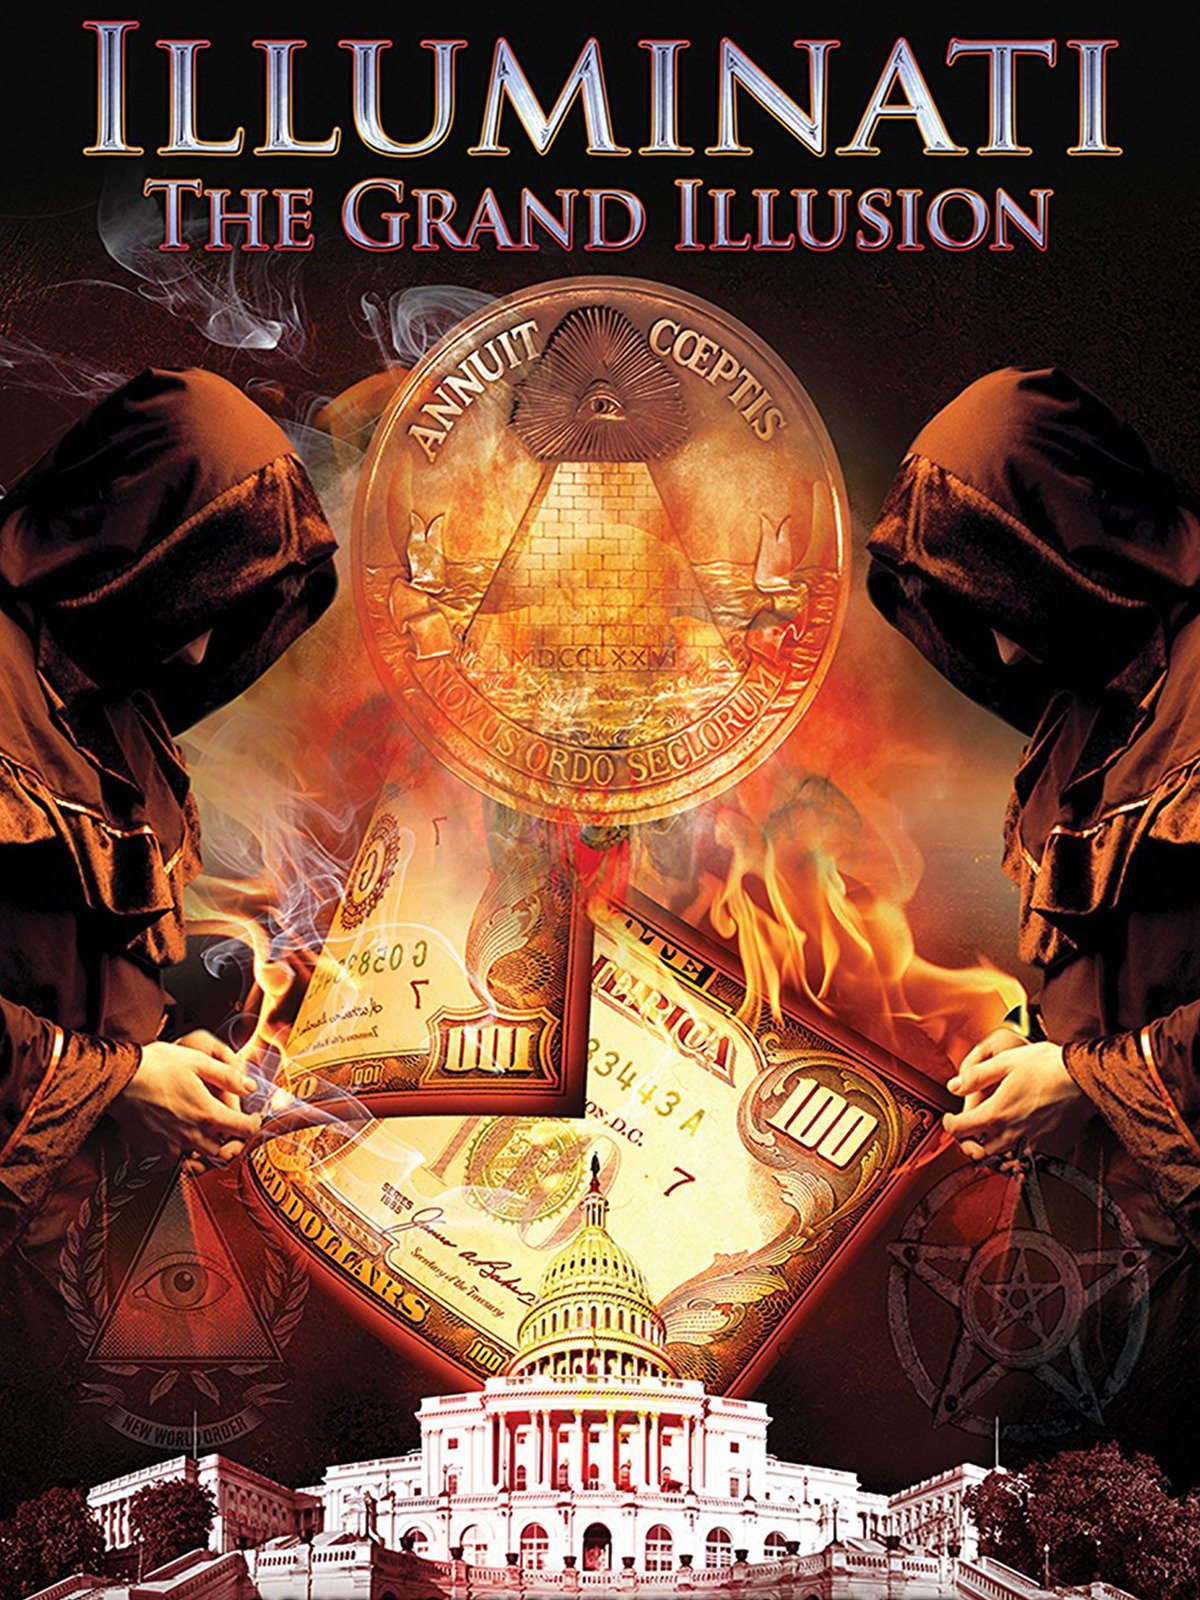 Illuminati: The Grand Illusion